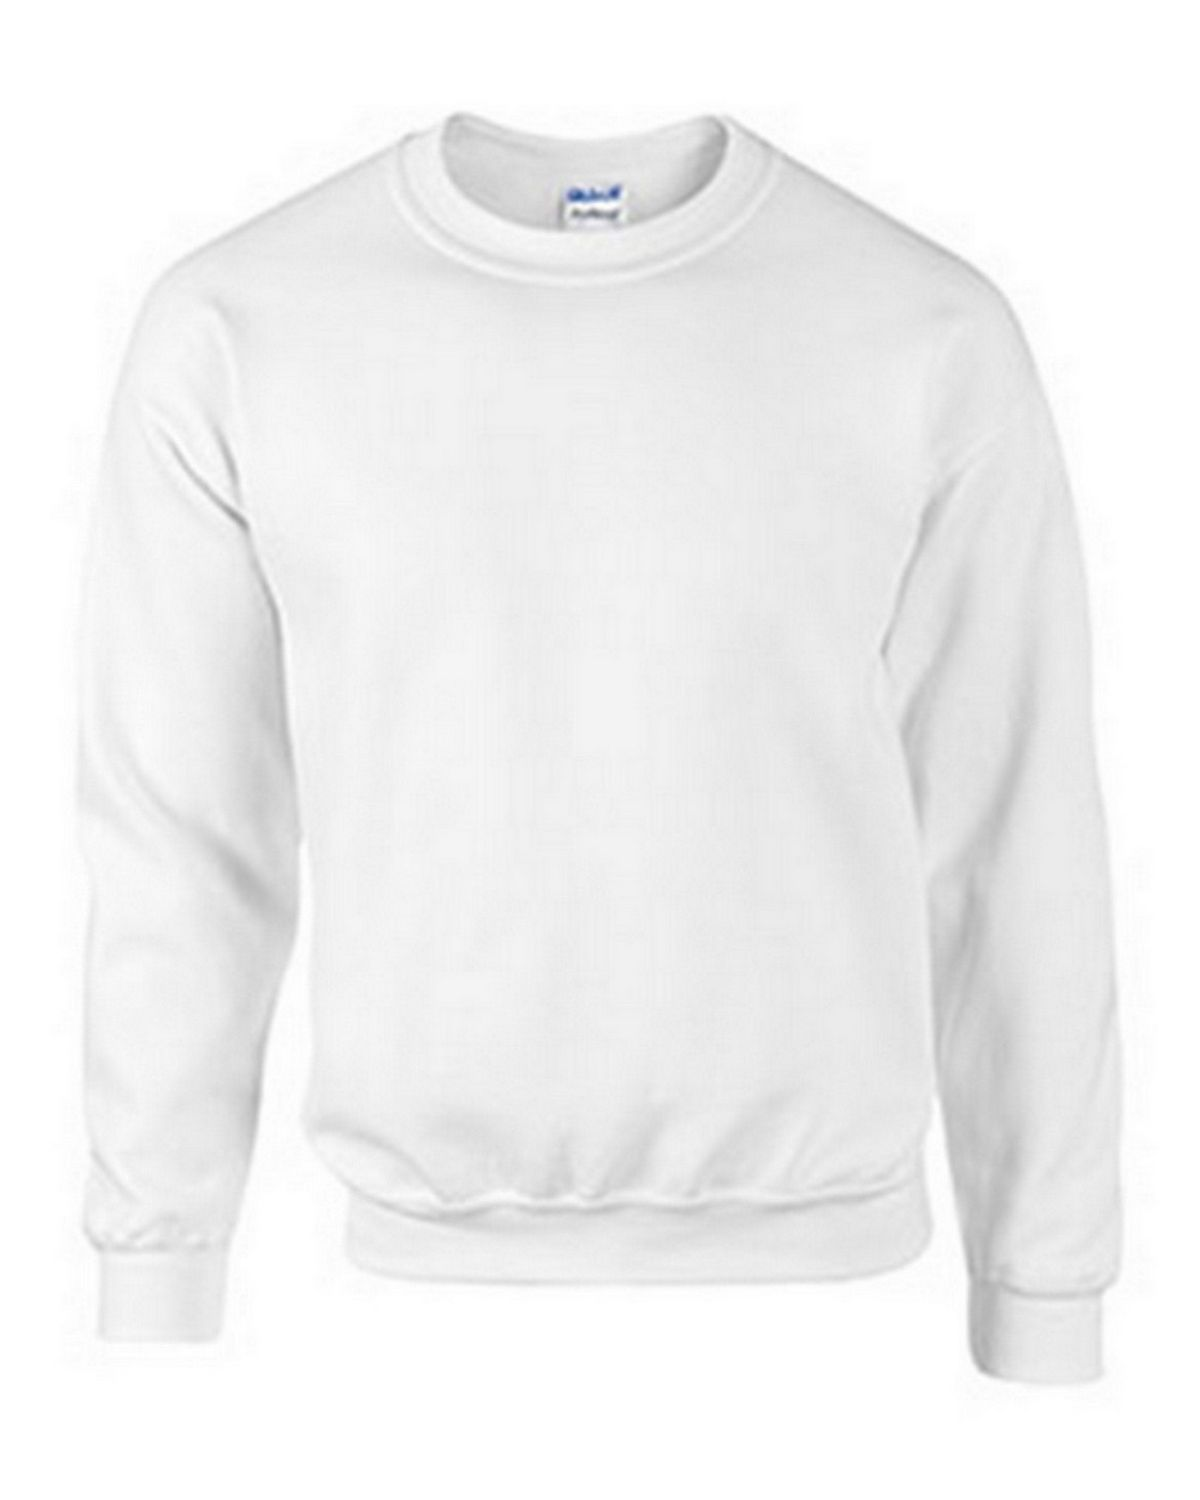 Gildan G12000 Adult Crewneck Sweatshirt - Red - M G12000